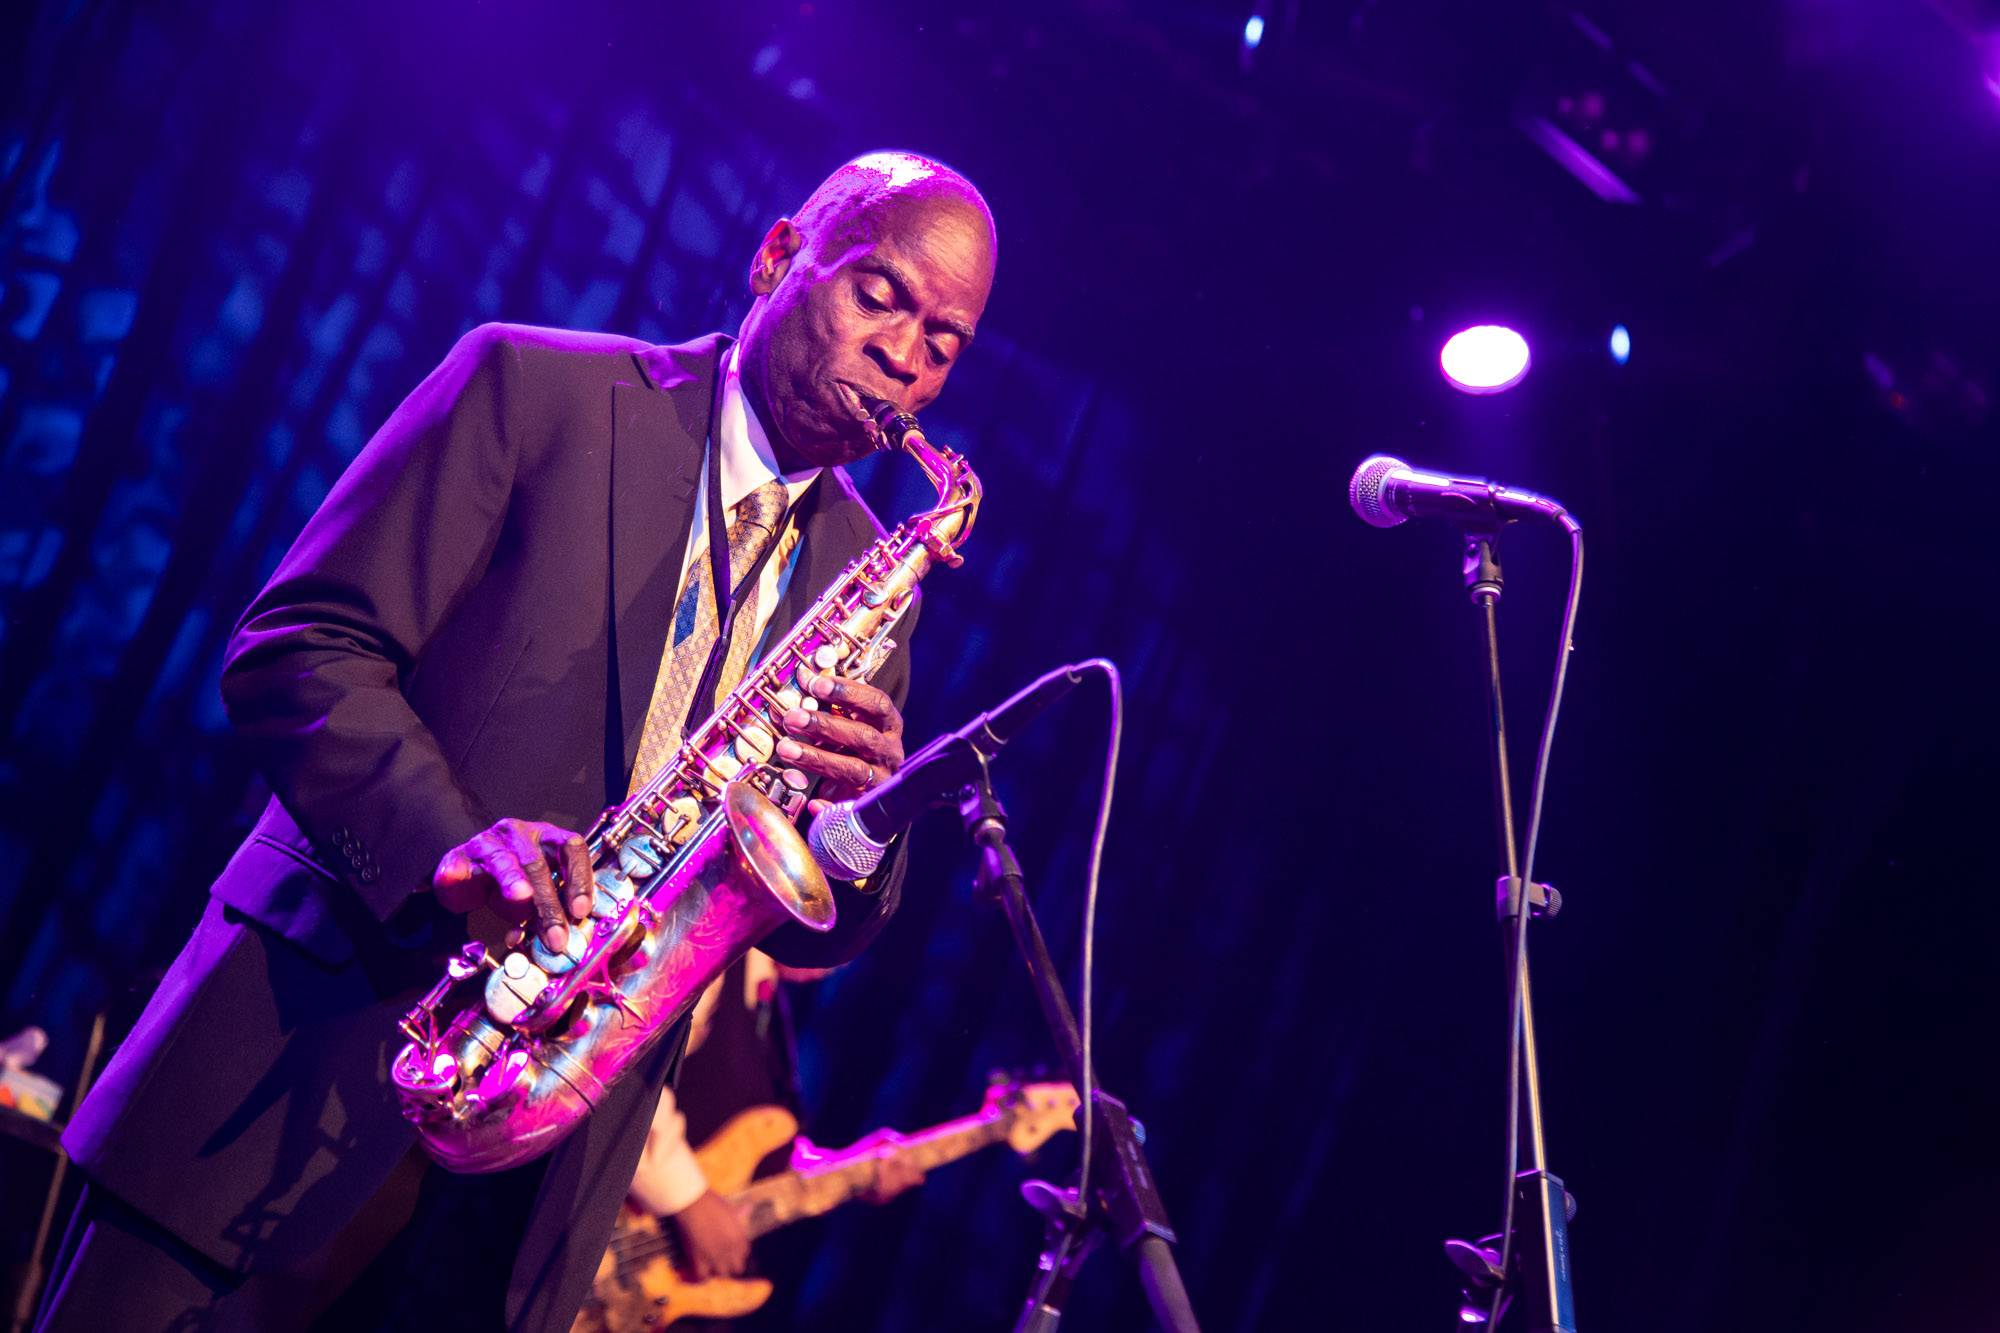 Maceo Parker at the Commodore Ballroom, Vancouver, Aug 21 2018. Kirk Chantraine photo.